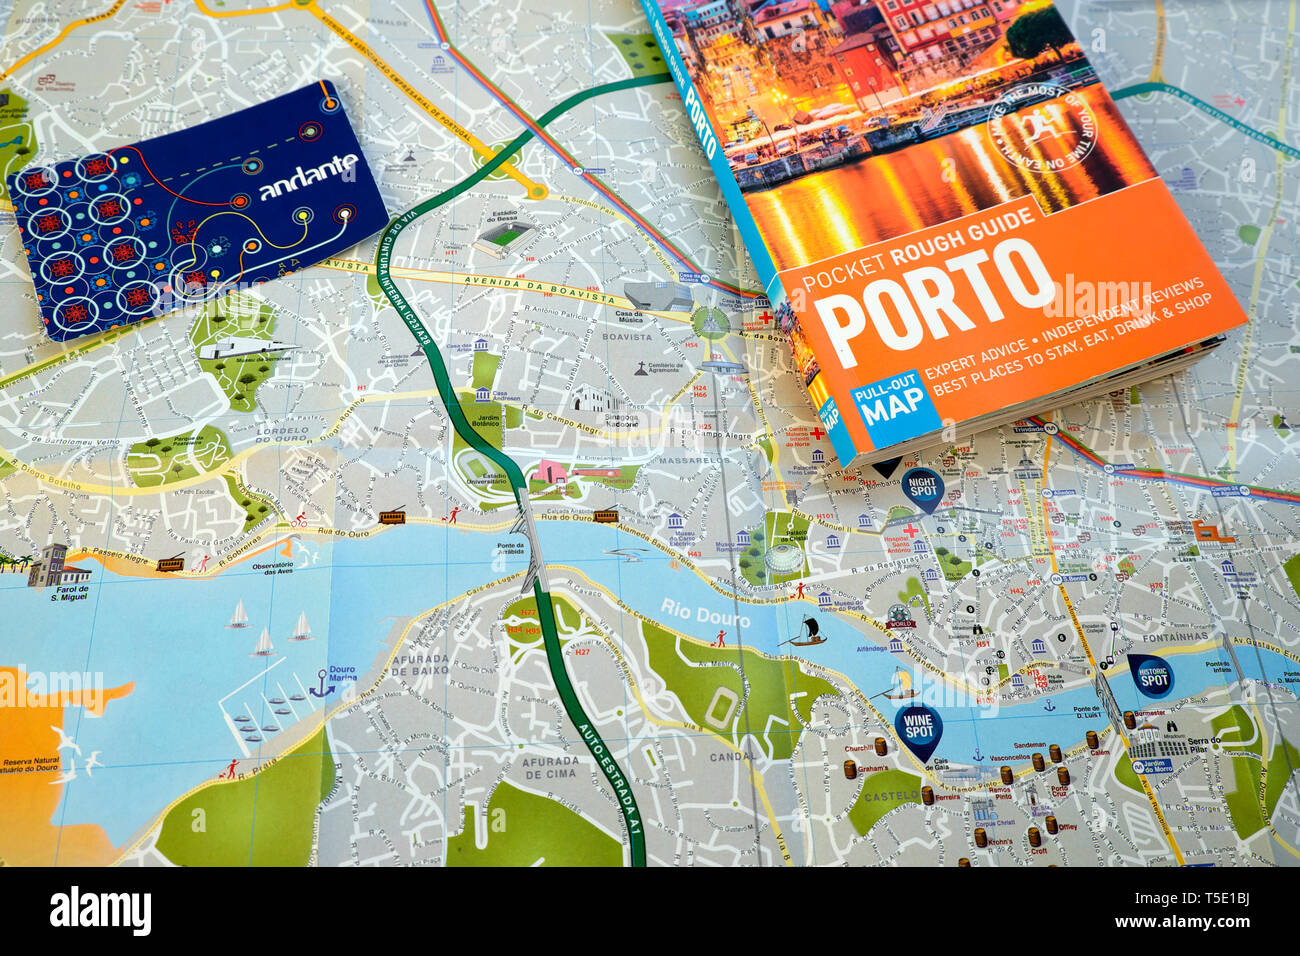 Porto Rough Guide, Porto map and Porto andante transport tour card on a map of the city and River Douro for tourists in  Portugal Europe KATHY DEWITT - Stock Image